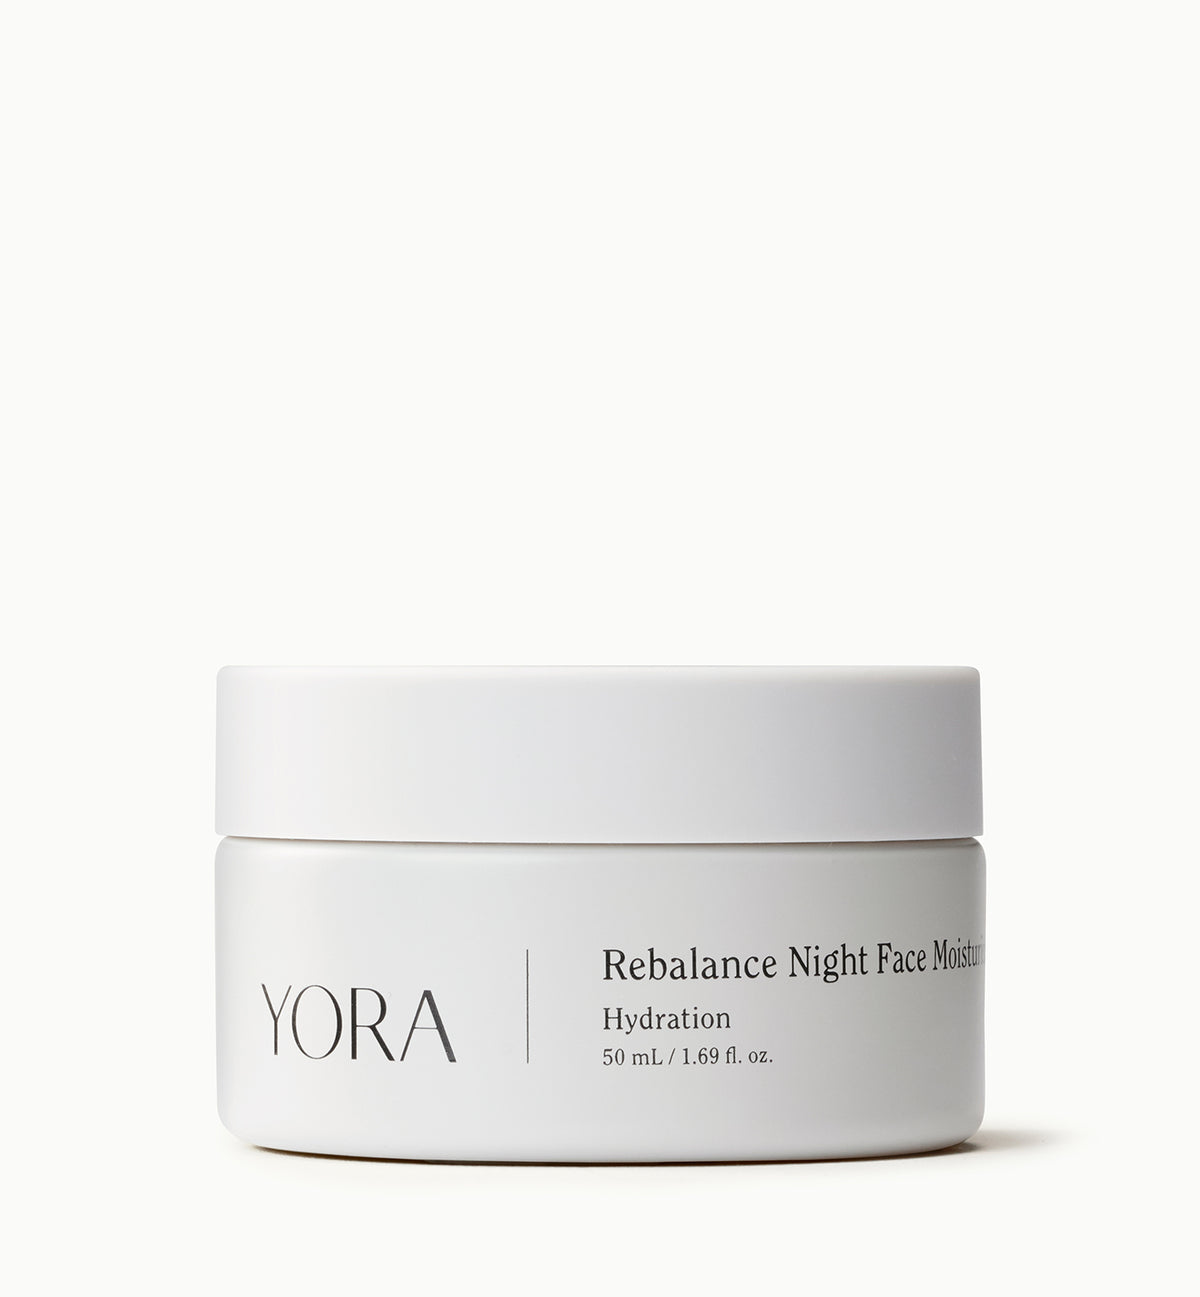 Rebalance Night Face Moisturiser